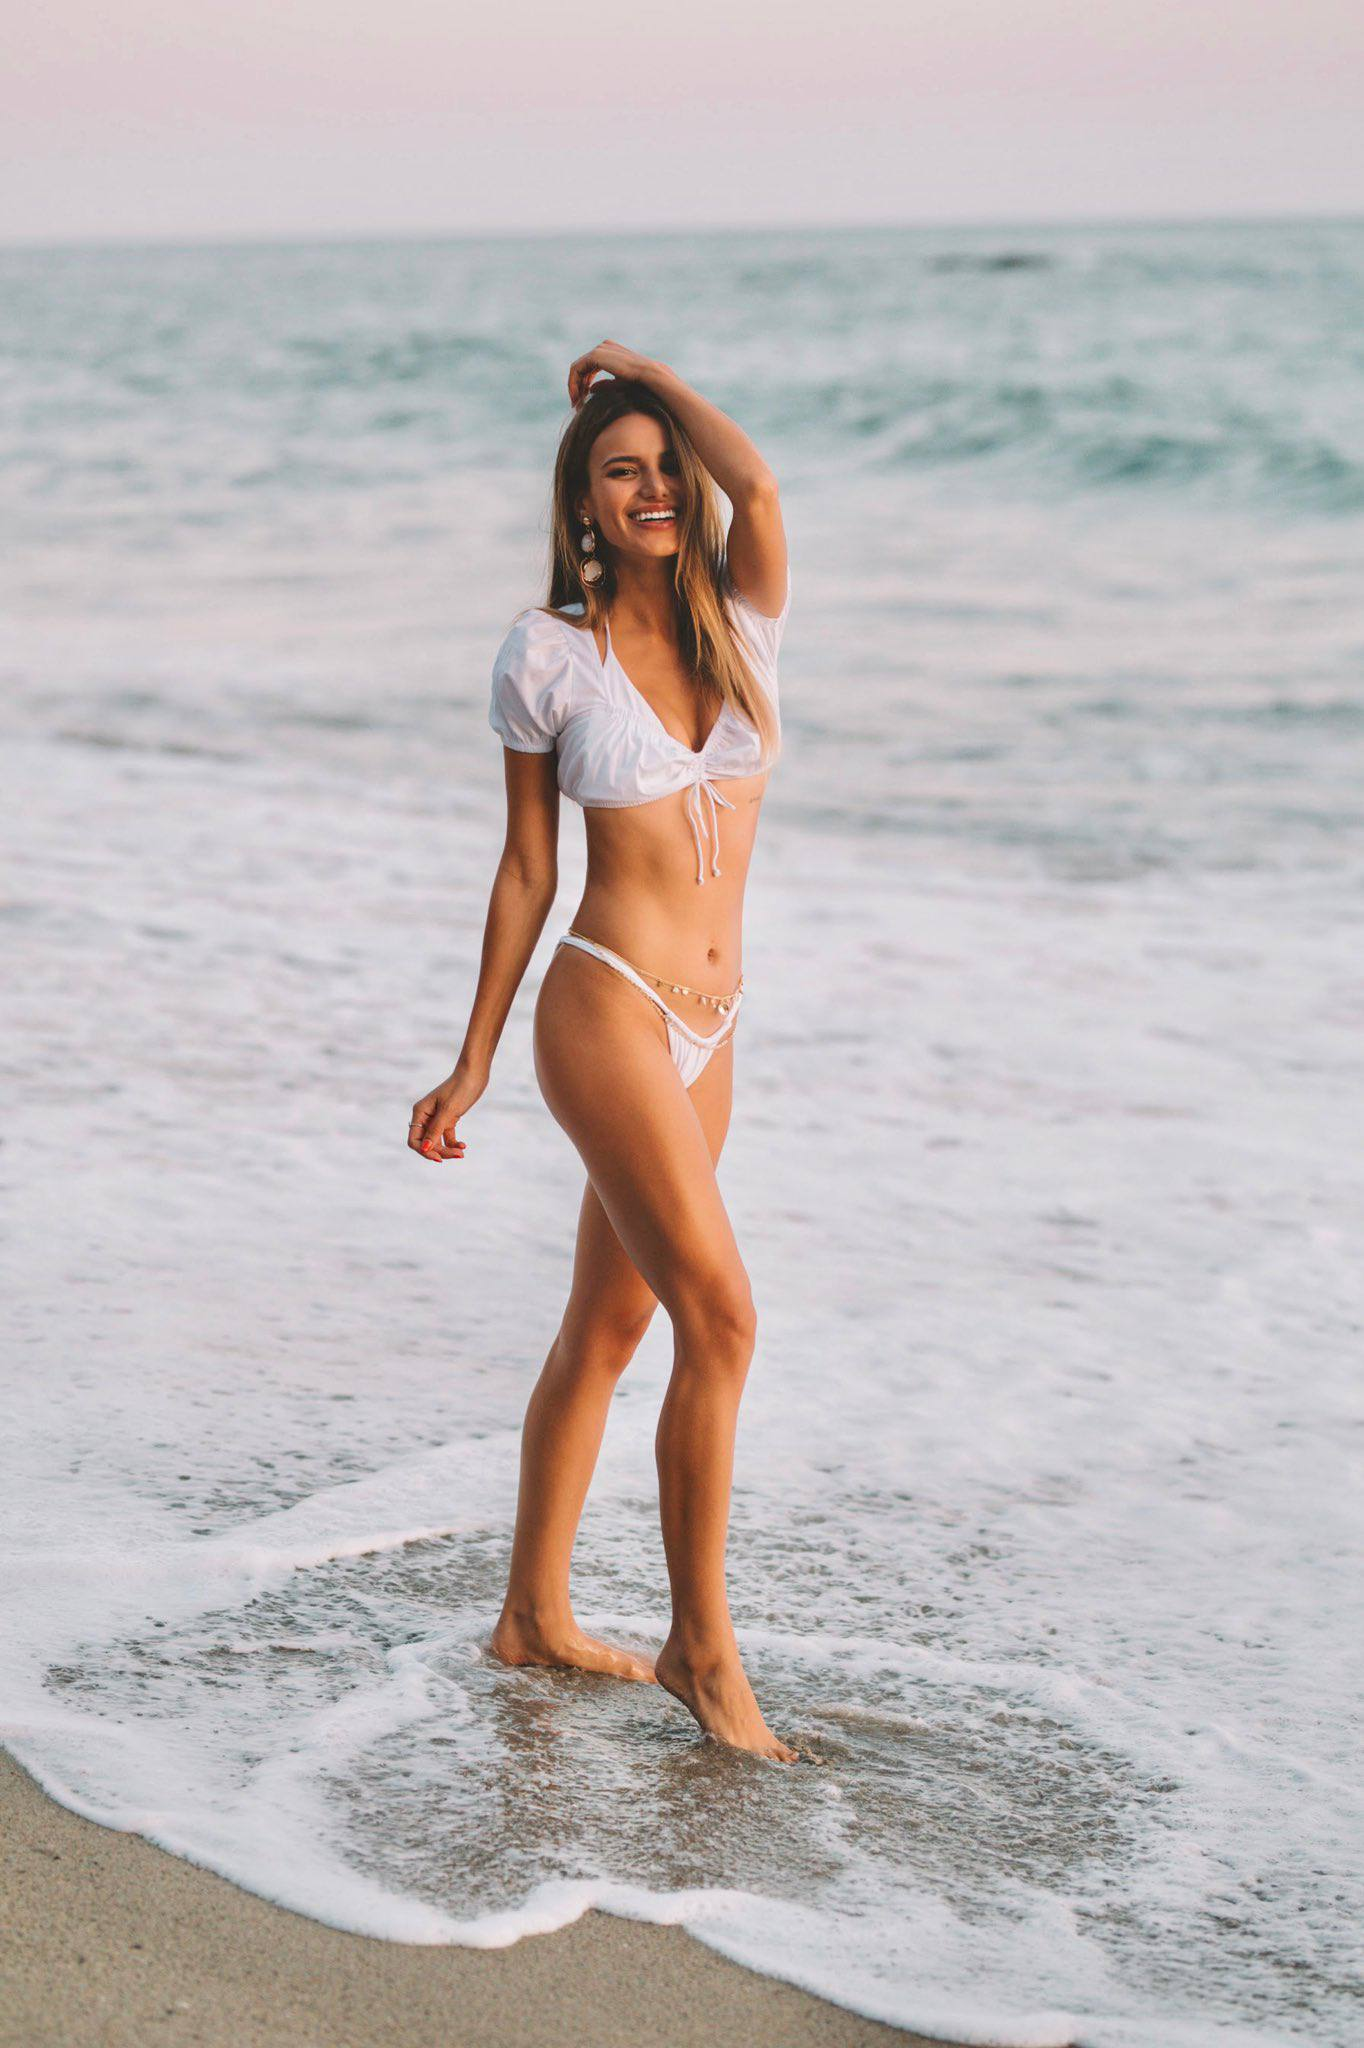 Madison Reed Sexy Body In Beach Photoshoot By Daniel Poplawsky 0005